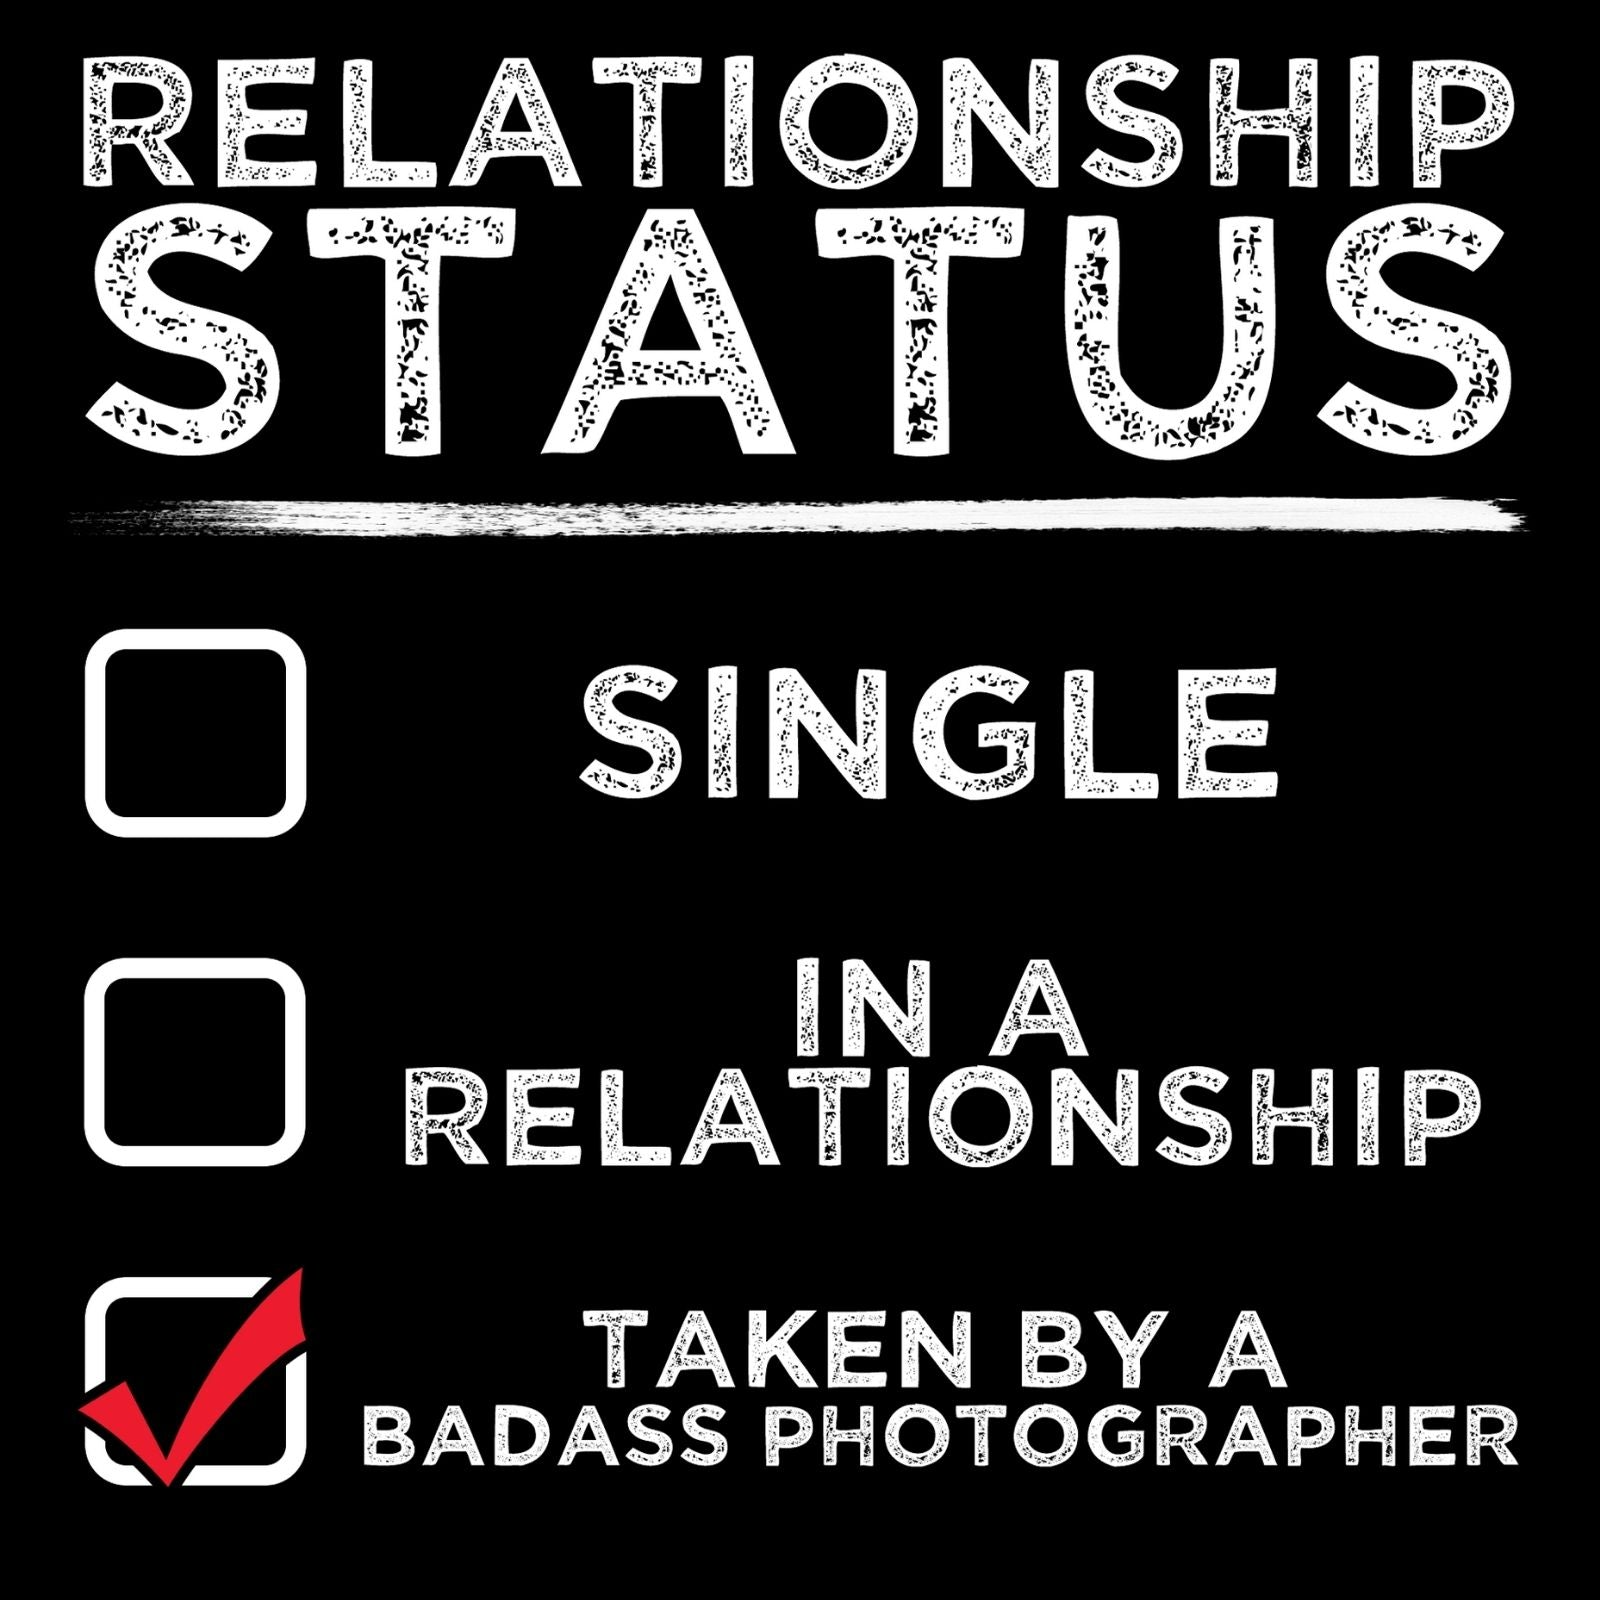 Relationship Status Single In A Relationship Taken By A Badass Photographer - Bastard Graphics